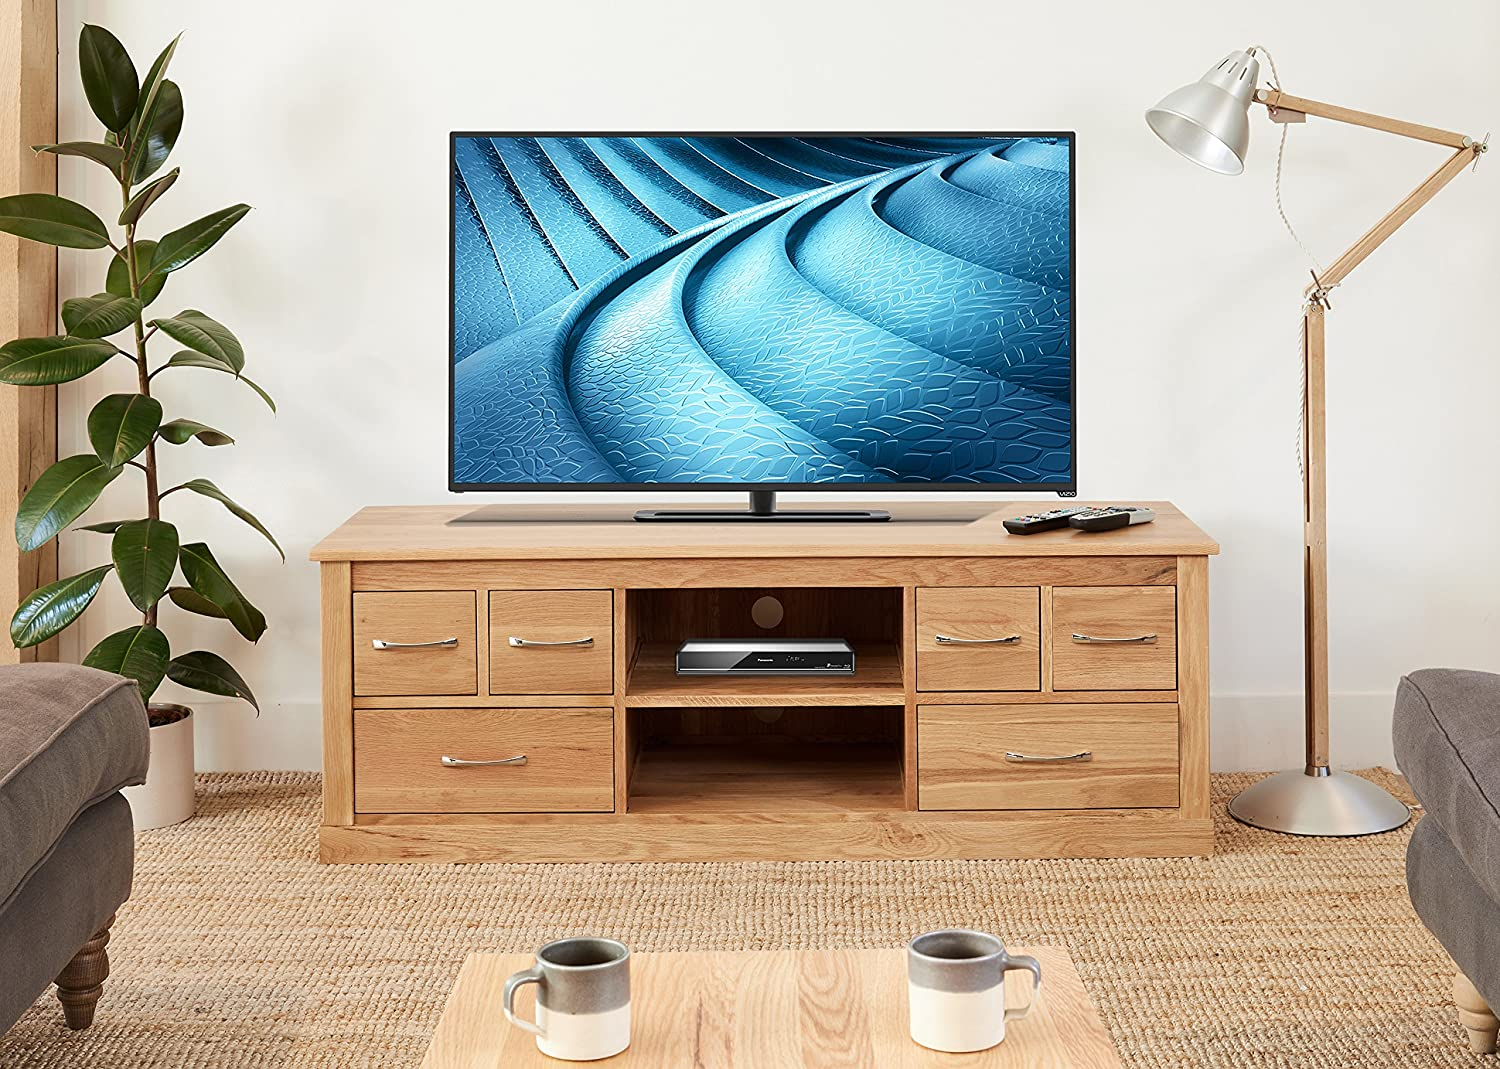 mobel solid oak reversible. Baumhaus Mobel Oak Widescreen Television Cabinet: Amazon.co.uk: Kitchen \u0026 Home Solid Reversible O